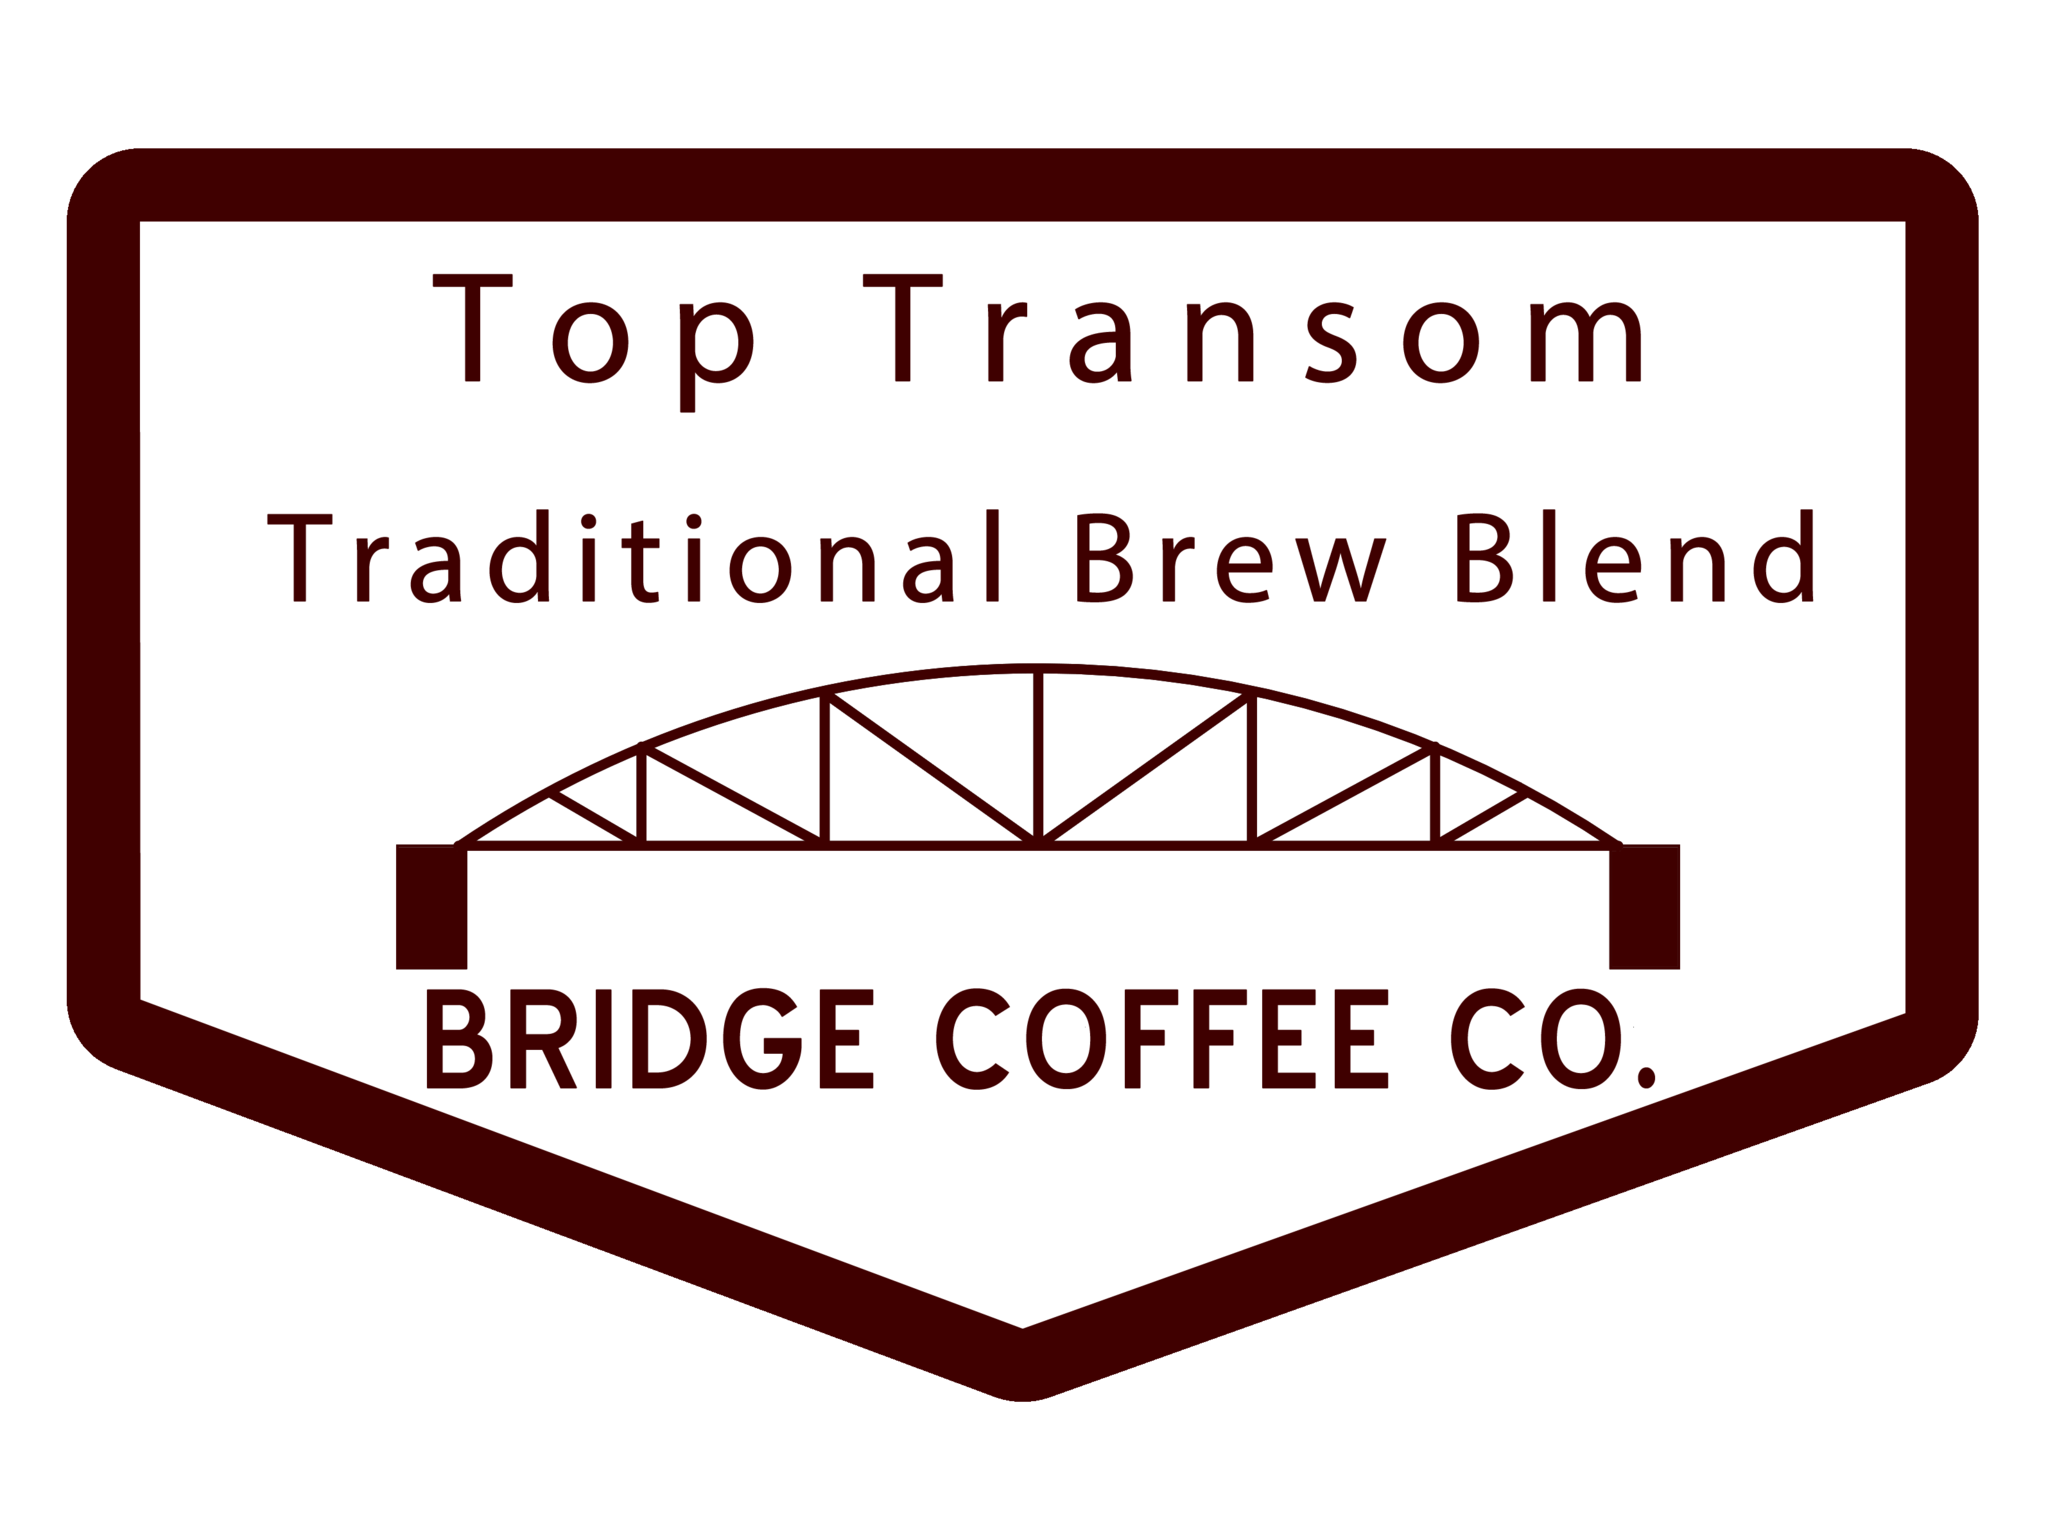 Top Transom Blend